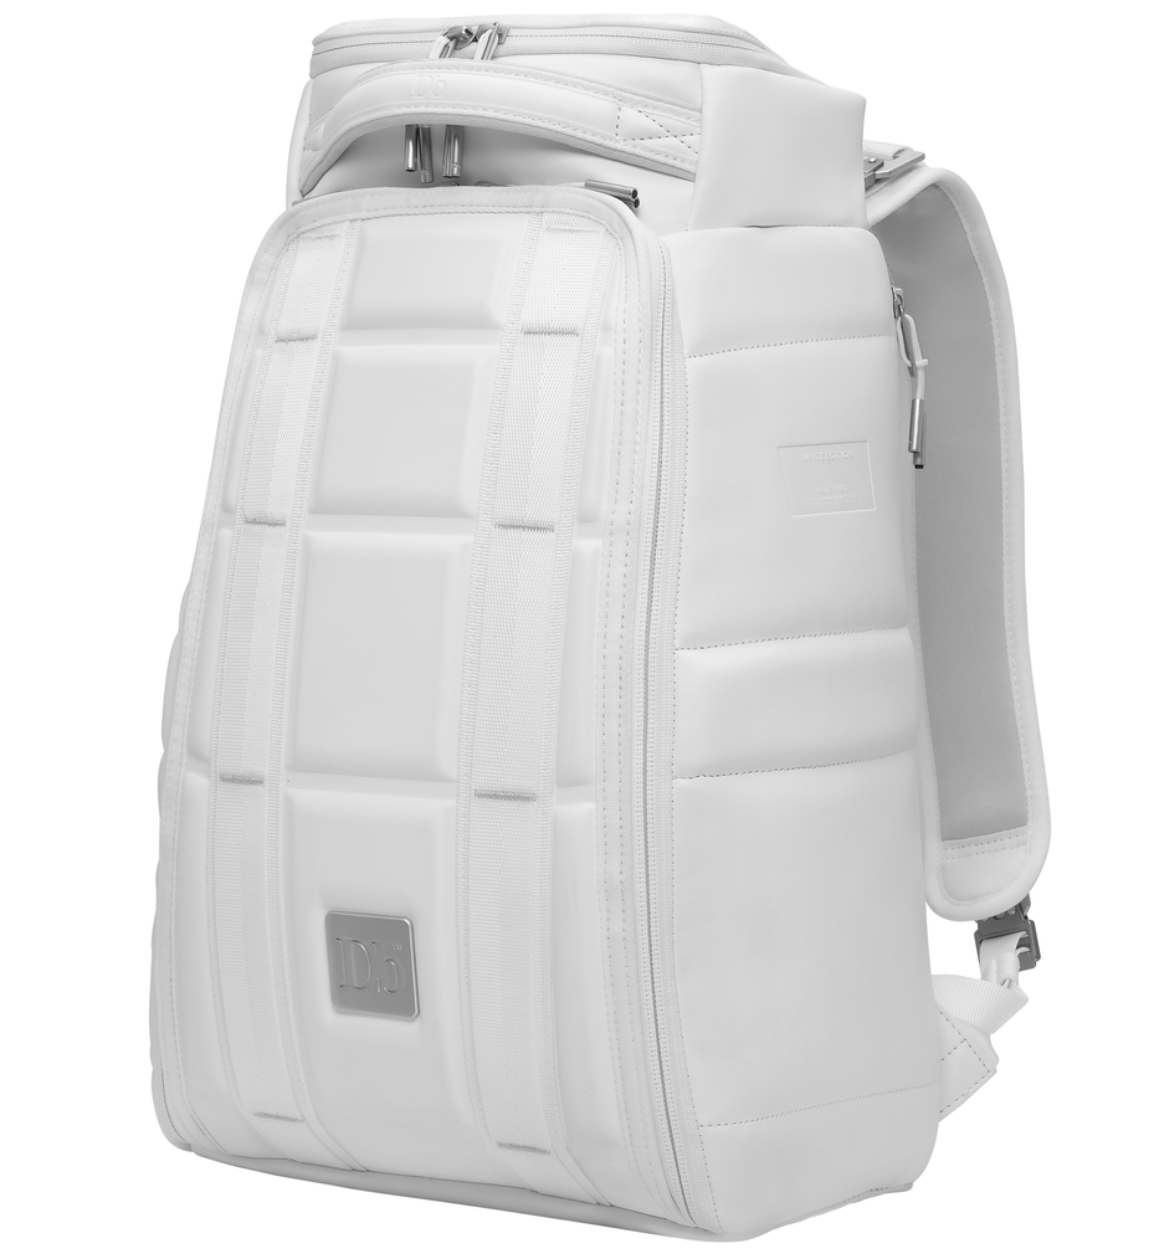 Bilde av Douchbags The Hugger 20l white out 241U02